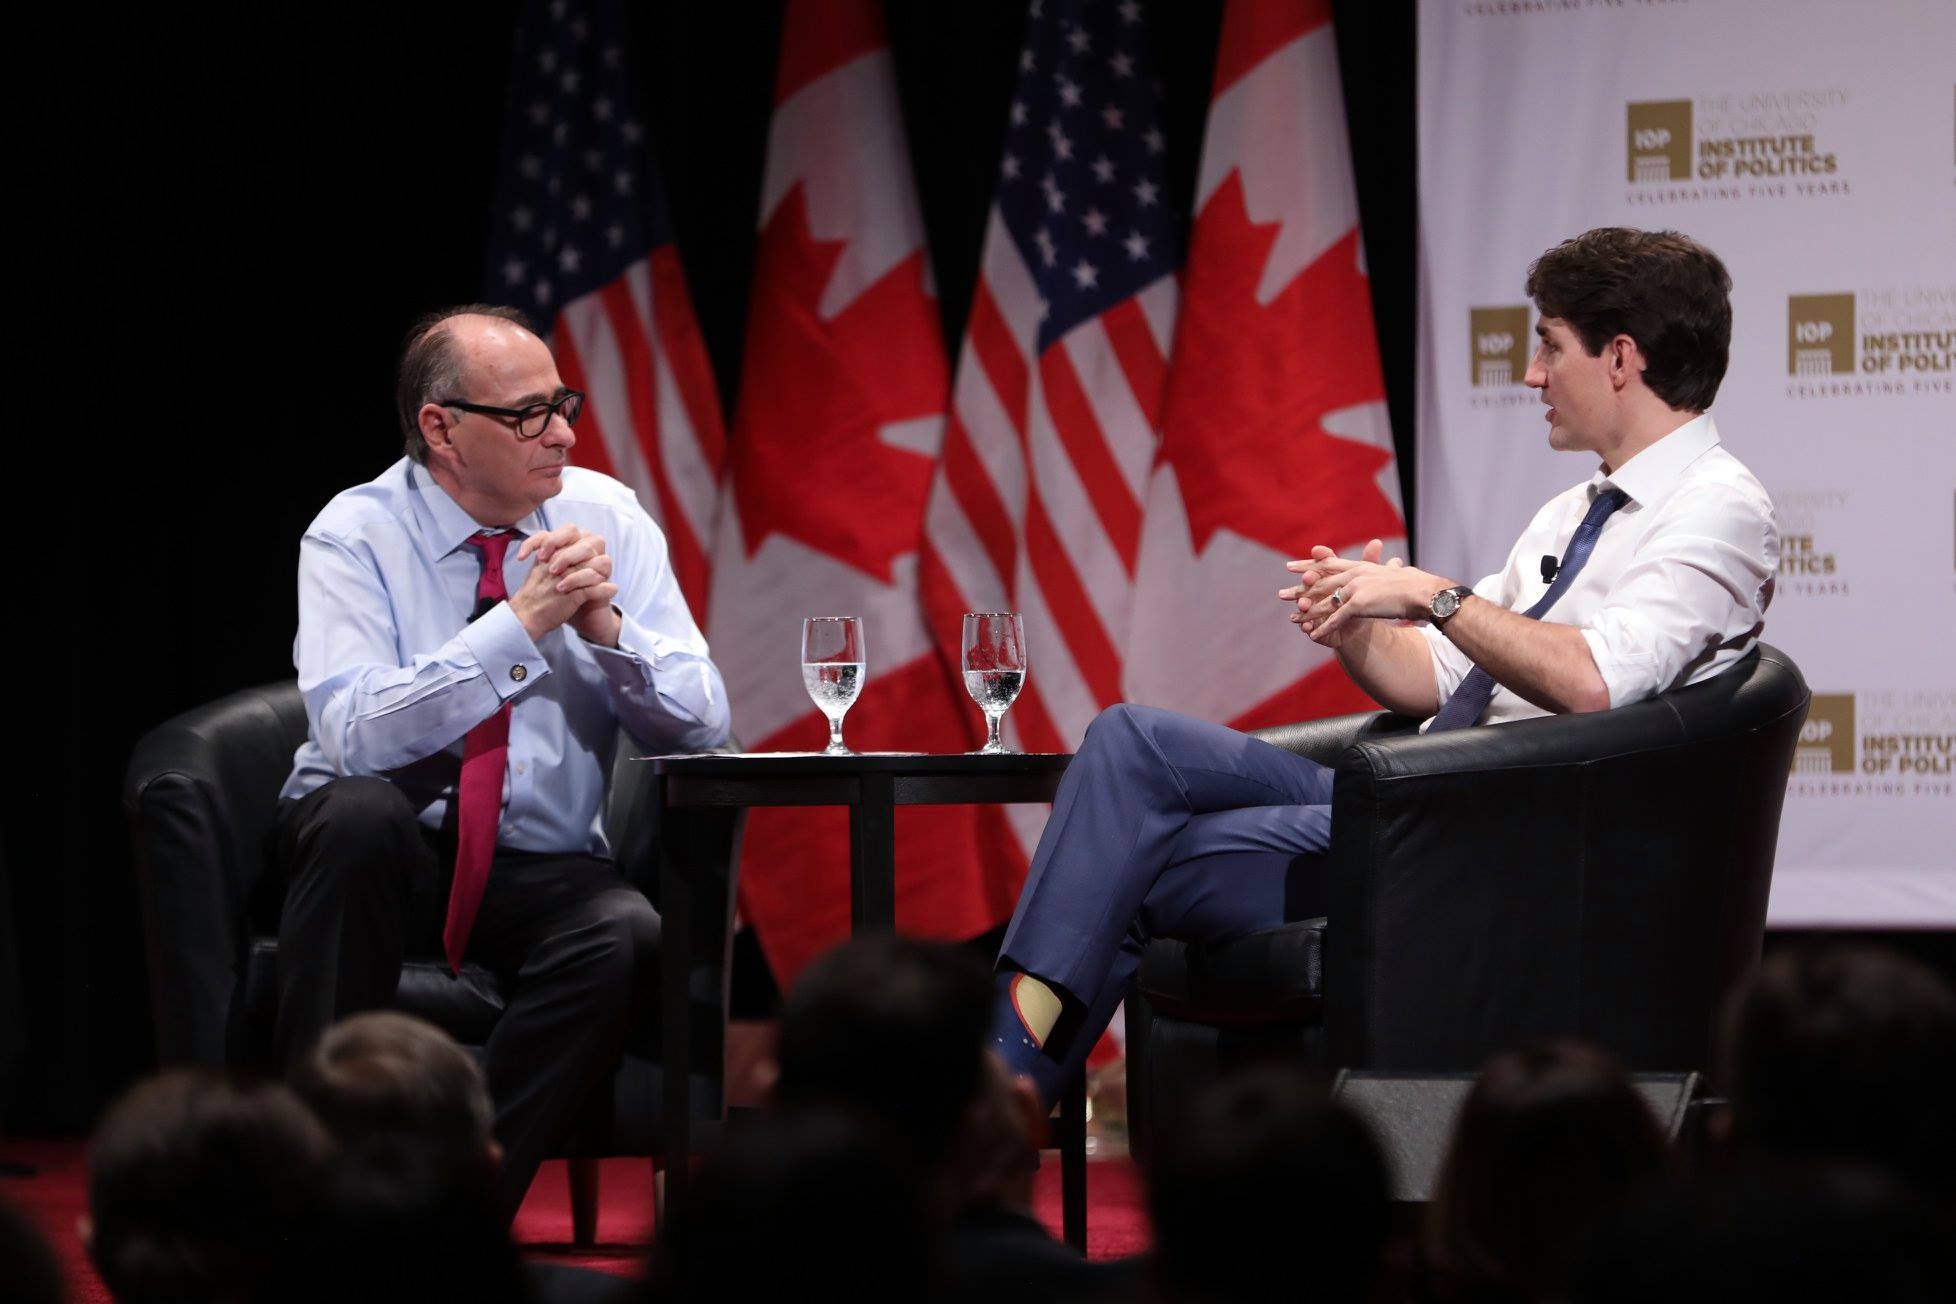 Trudeau's visit to San Francisco marked the first time in more than 70 years that a Canadian prime minister had come to the city, and his first in-person pitch to Silicon Valley. (Photo: Justin Trudeau/Facebook)